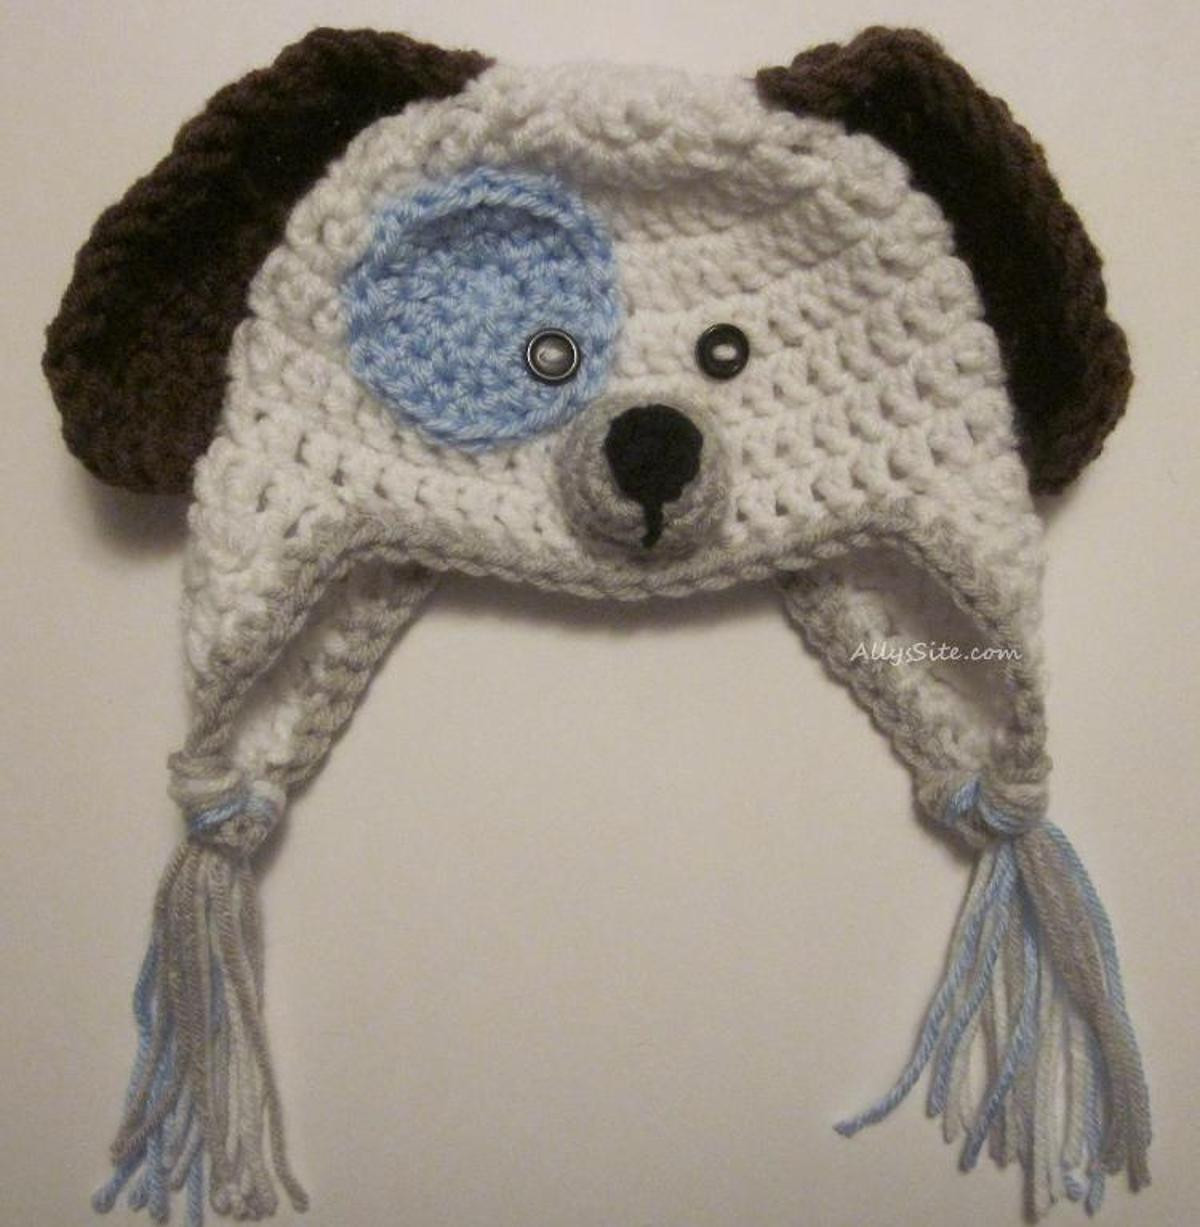 Crochet Dog Best Of 12 Newborn Crochet Hat Patterns to Download for Free Of Perfect 50 Images Crochet Dog